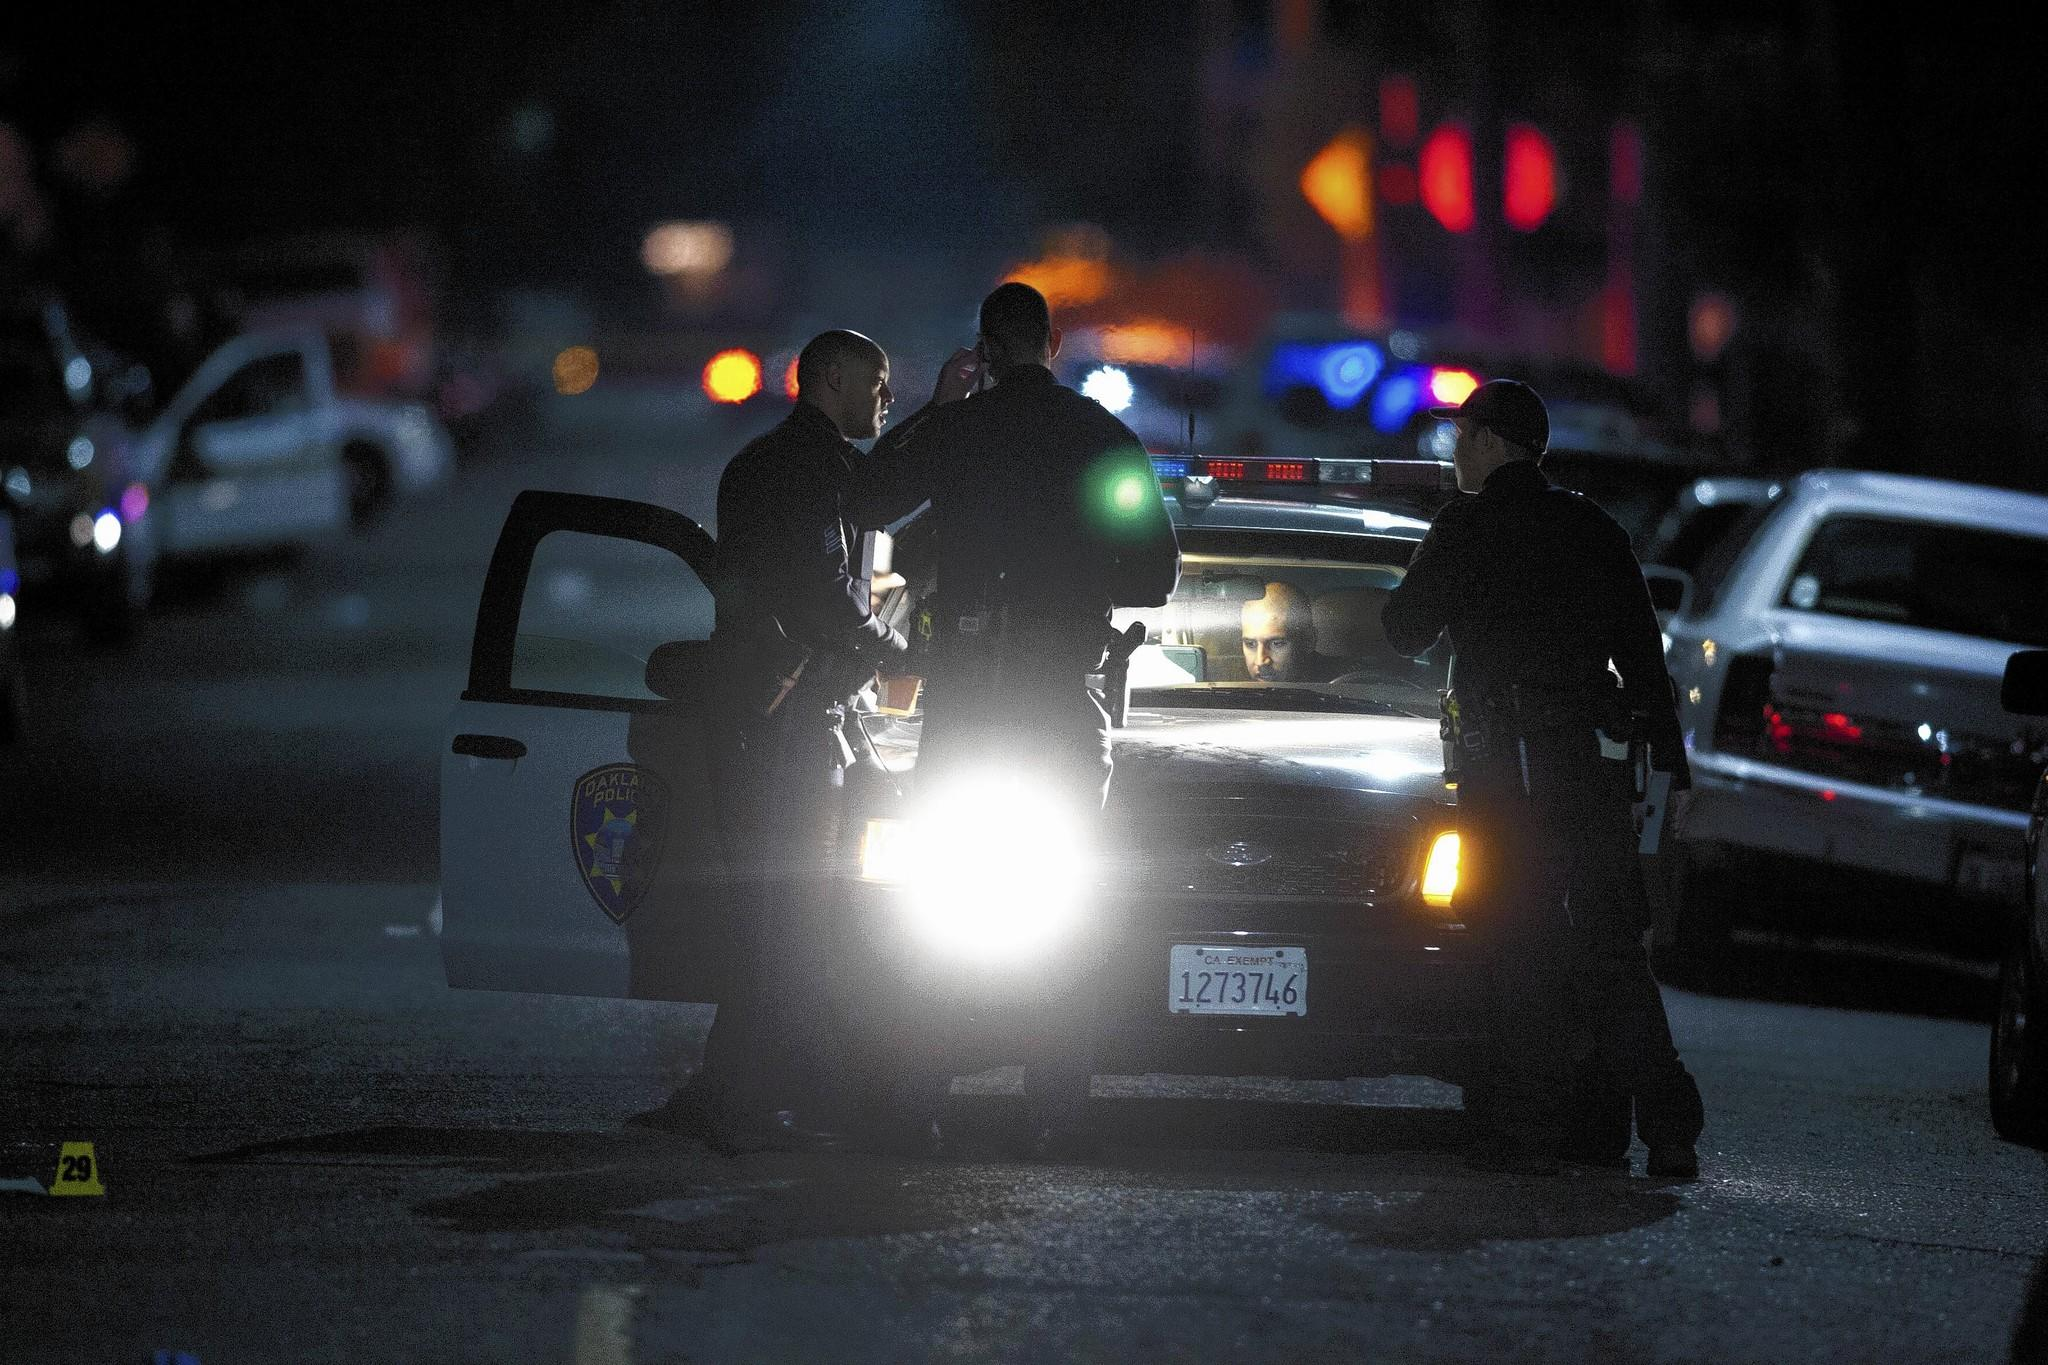 Oakland police gather evidence at the scene of a multiple shooting in November. It is not entirely clear what spurred the city's drop in violent crime, but interviews with police, city officials and community leaders suggest that a crackdown on two of Oakland's most violent gangs helped curtail not only the murder rate but also robberies.